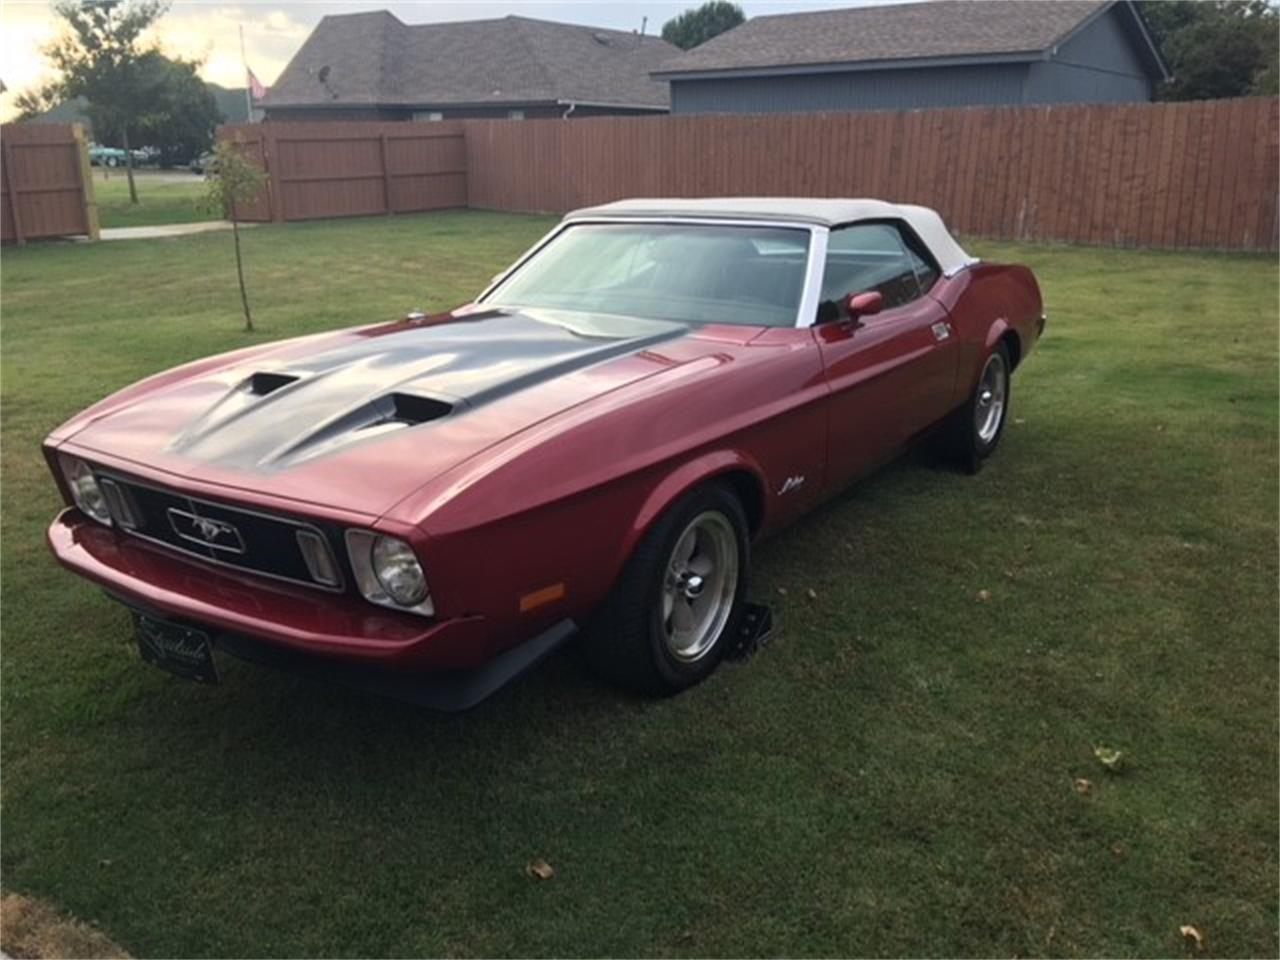 Large Picture of '73 Mustang (Roush) - LRQU